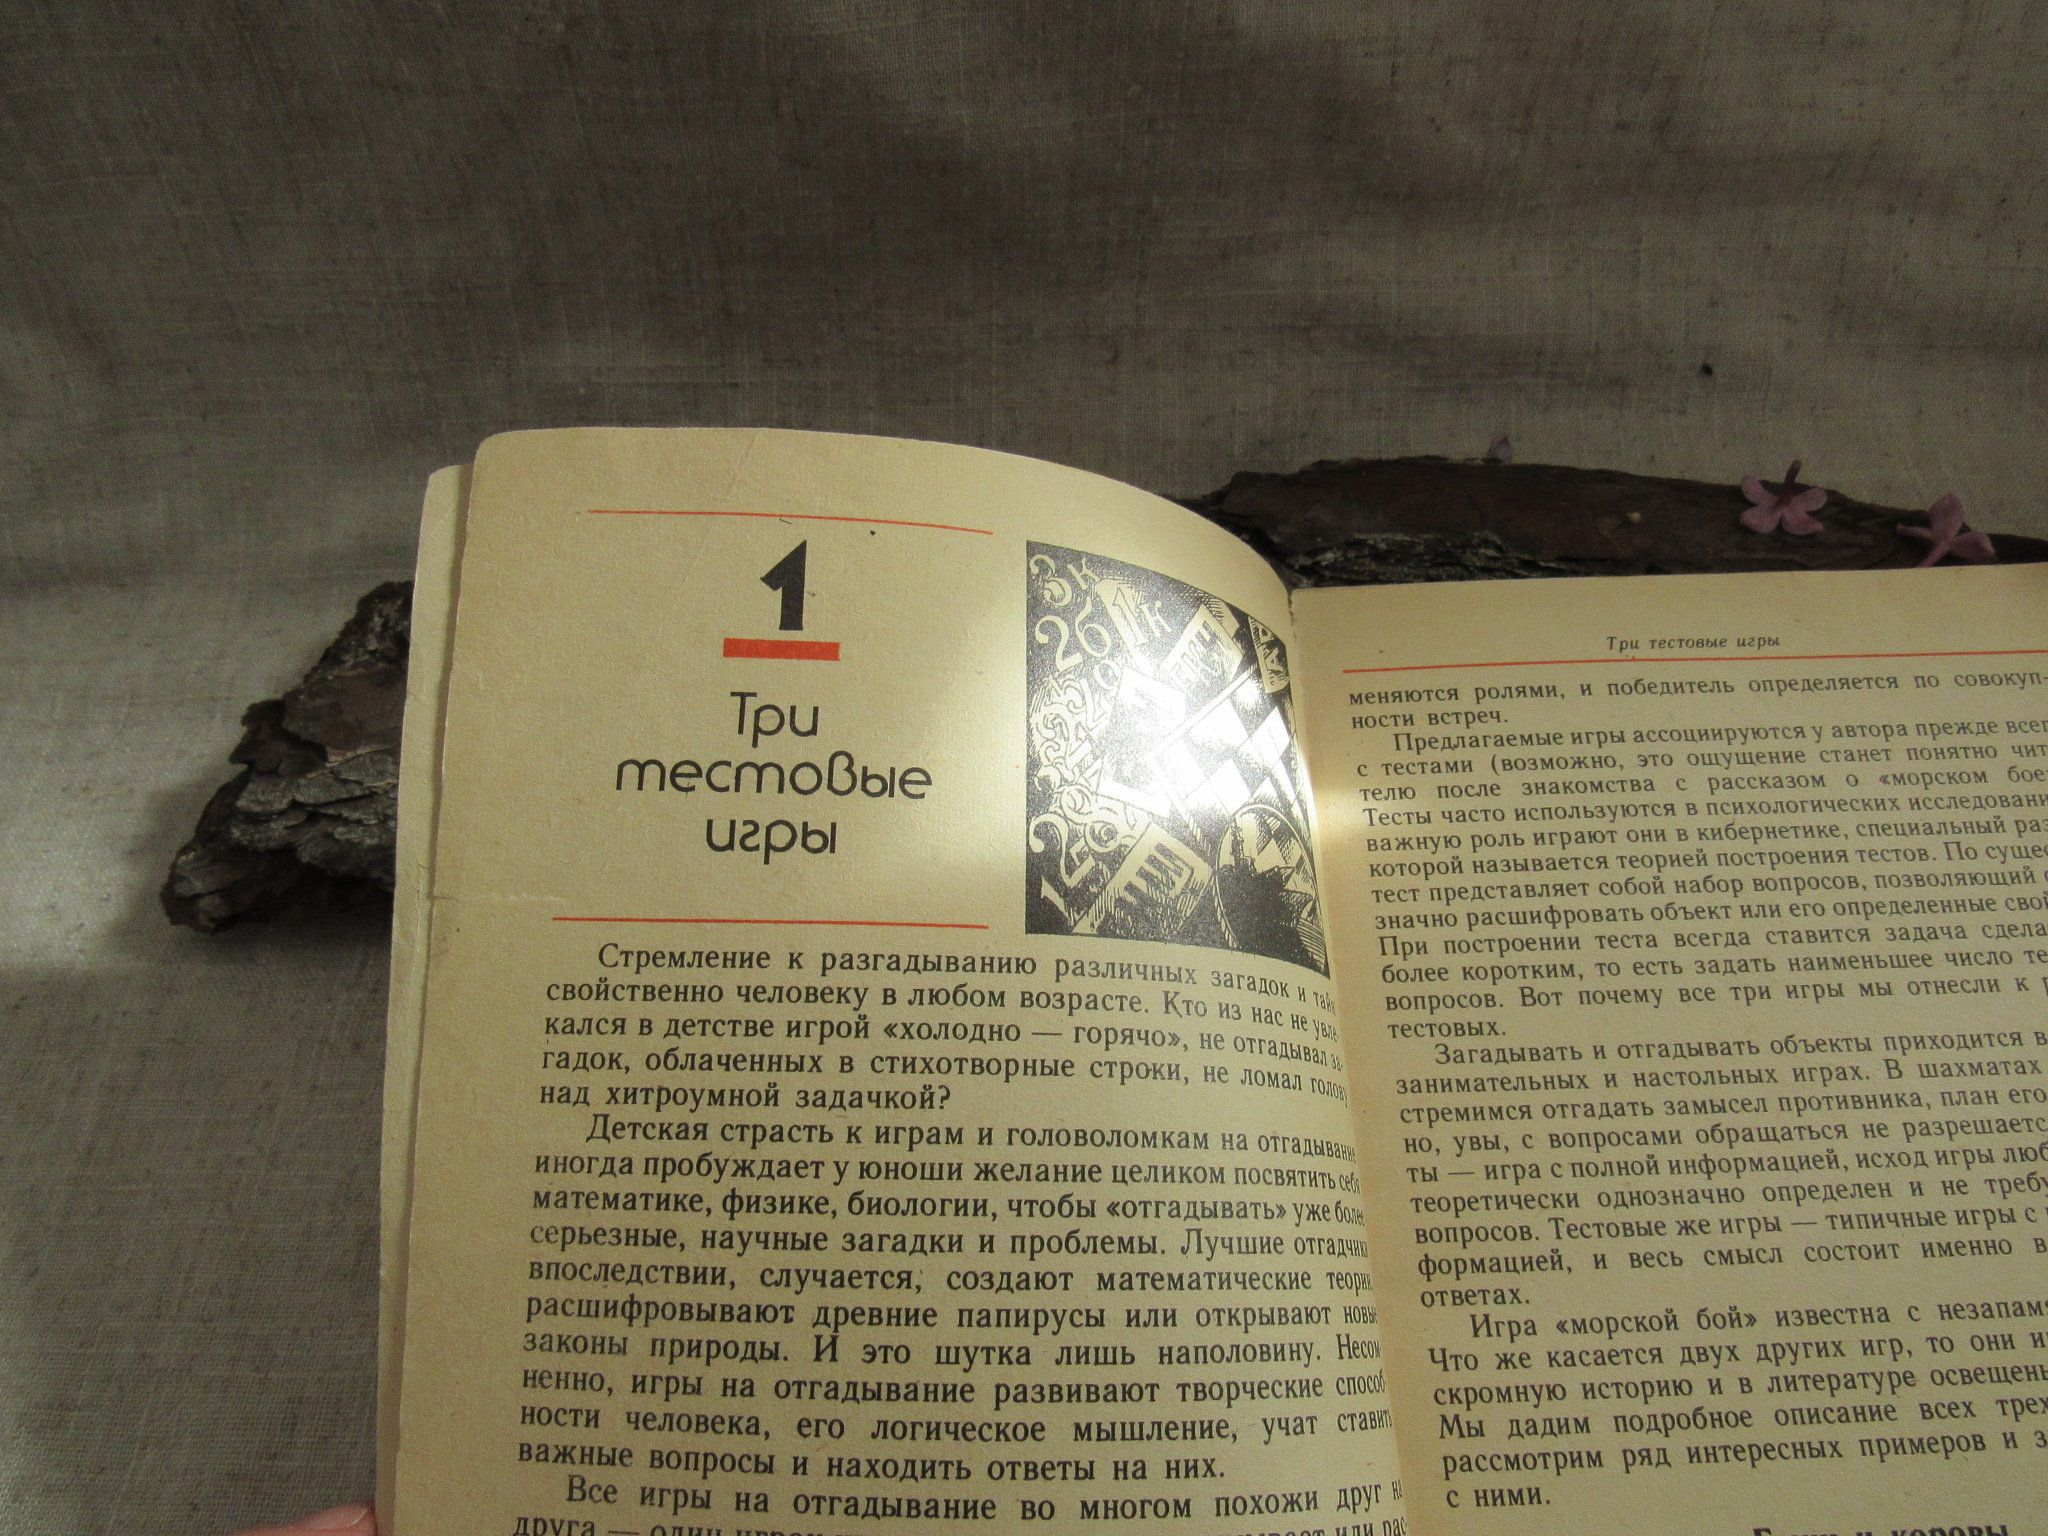 Brain games soviet era book in Russian Exciting math games vintage mathematical games and tasks book занимательные математические игры Soviet time book for any who loves brain games and maths! Many brain games in different themes, in Russian. The book has not his cover, other condition is very good. Size: 20 cm x 12,5 cm - 7 3/4 in x 5 in, 160 pages MATERIAL: paper All products are stored in a smoke free area. Colors may vary due to your monitor settings. READY TO SHIP! Please, visit my Crafts s